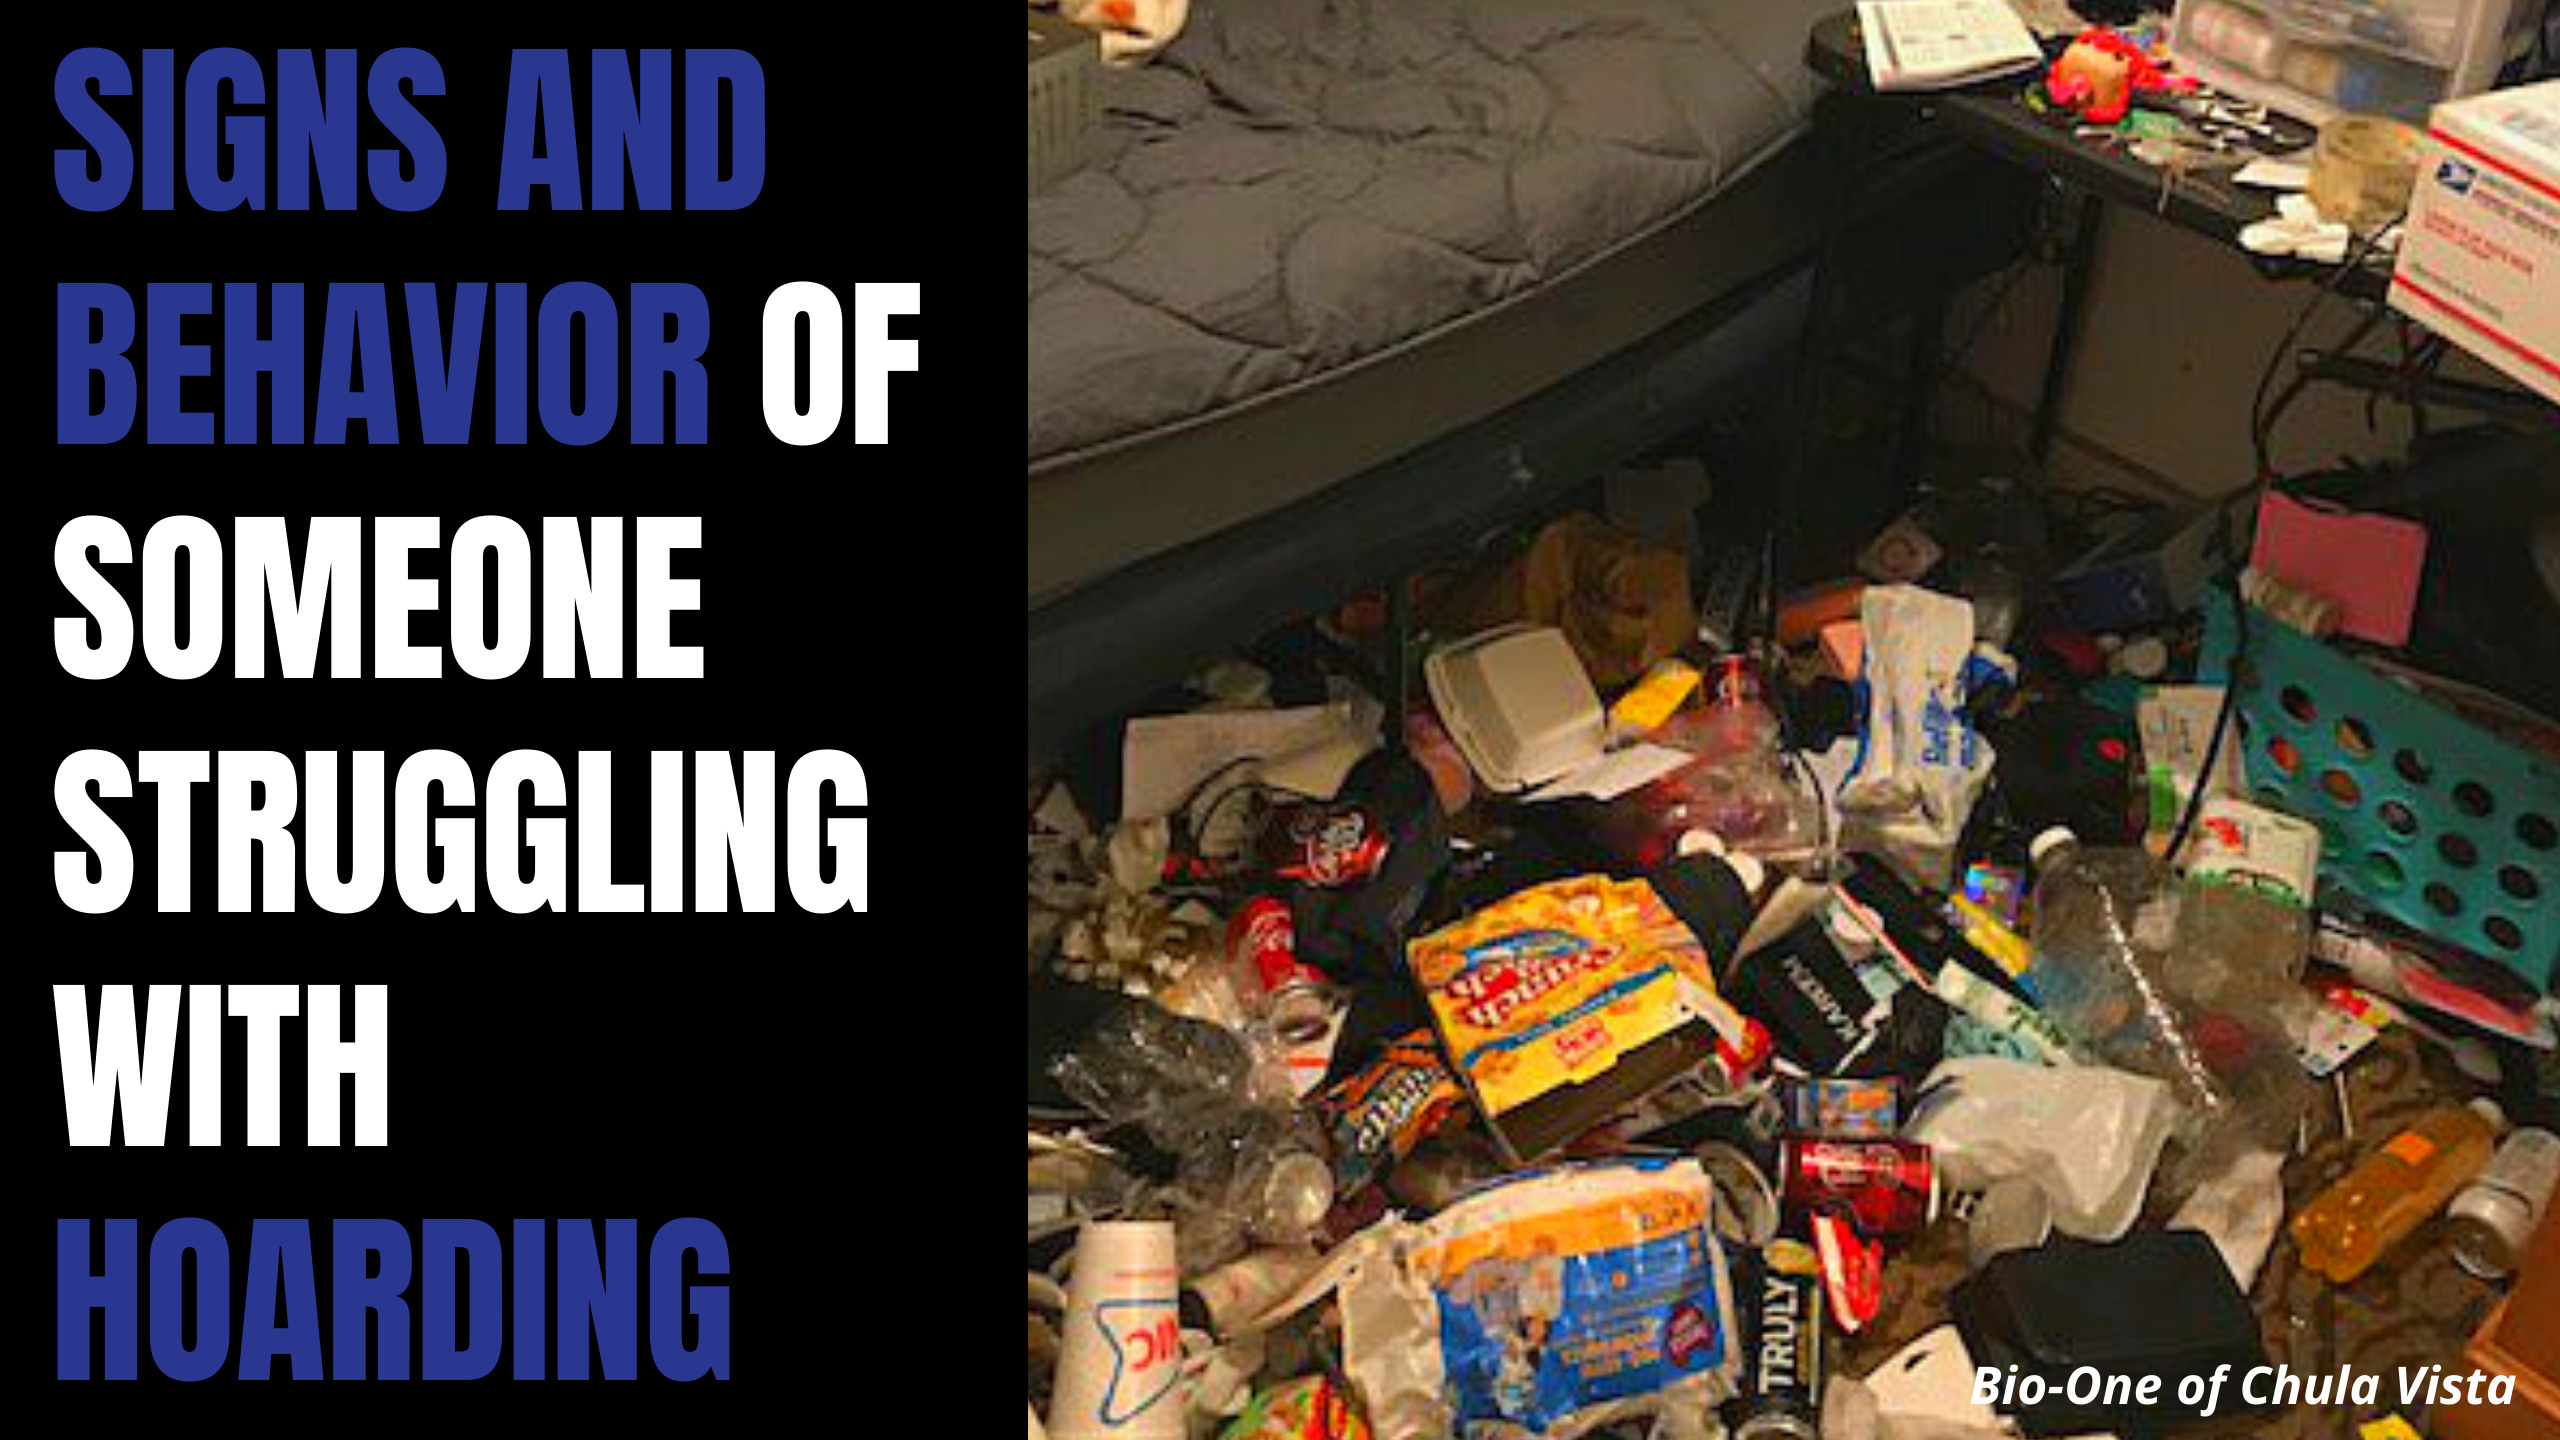 What are the signs and behavior of someone struggling with Hoarding?